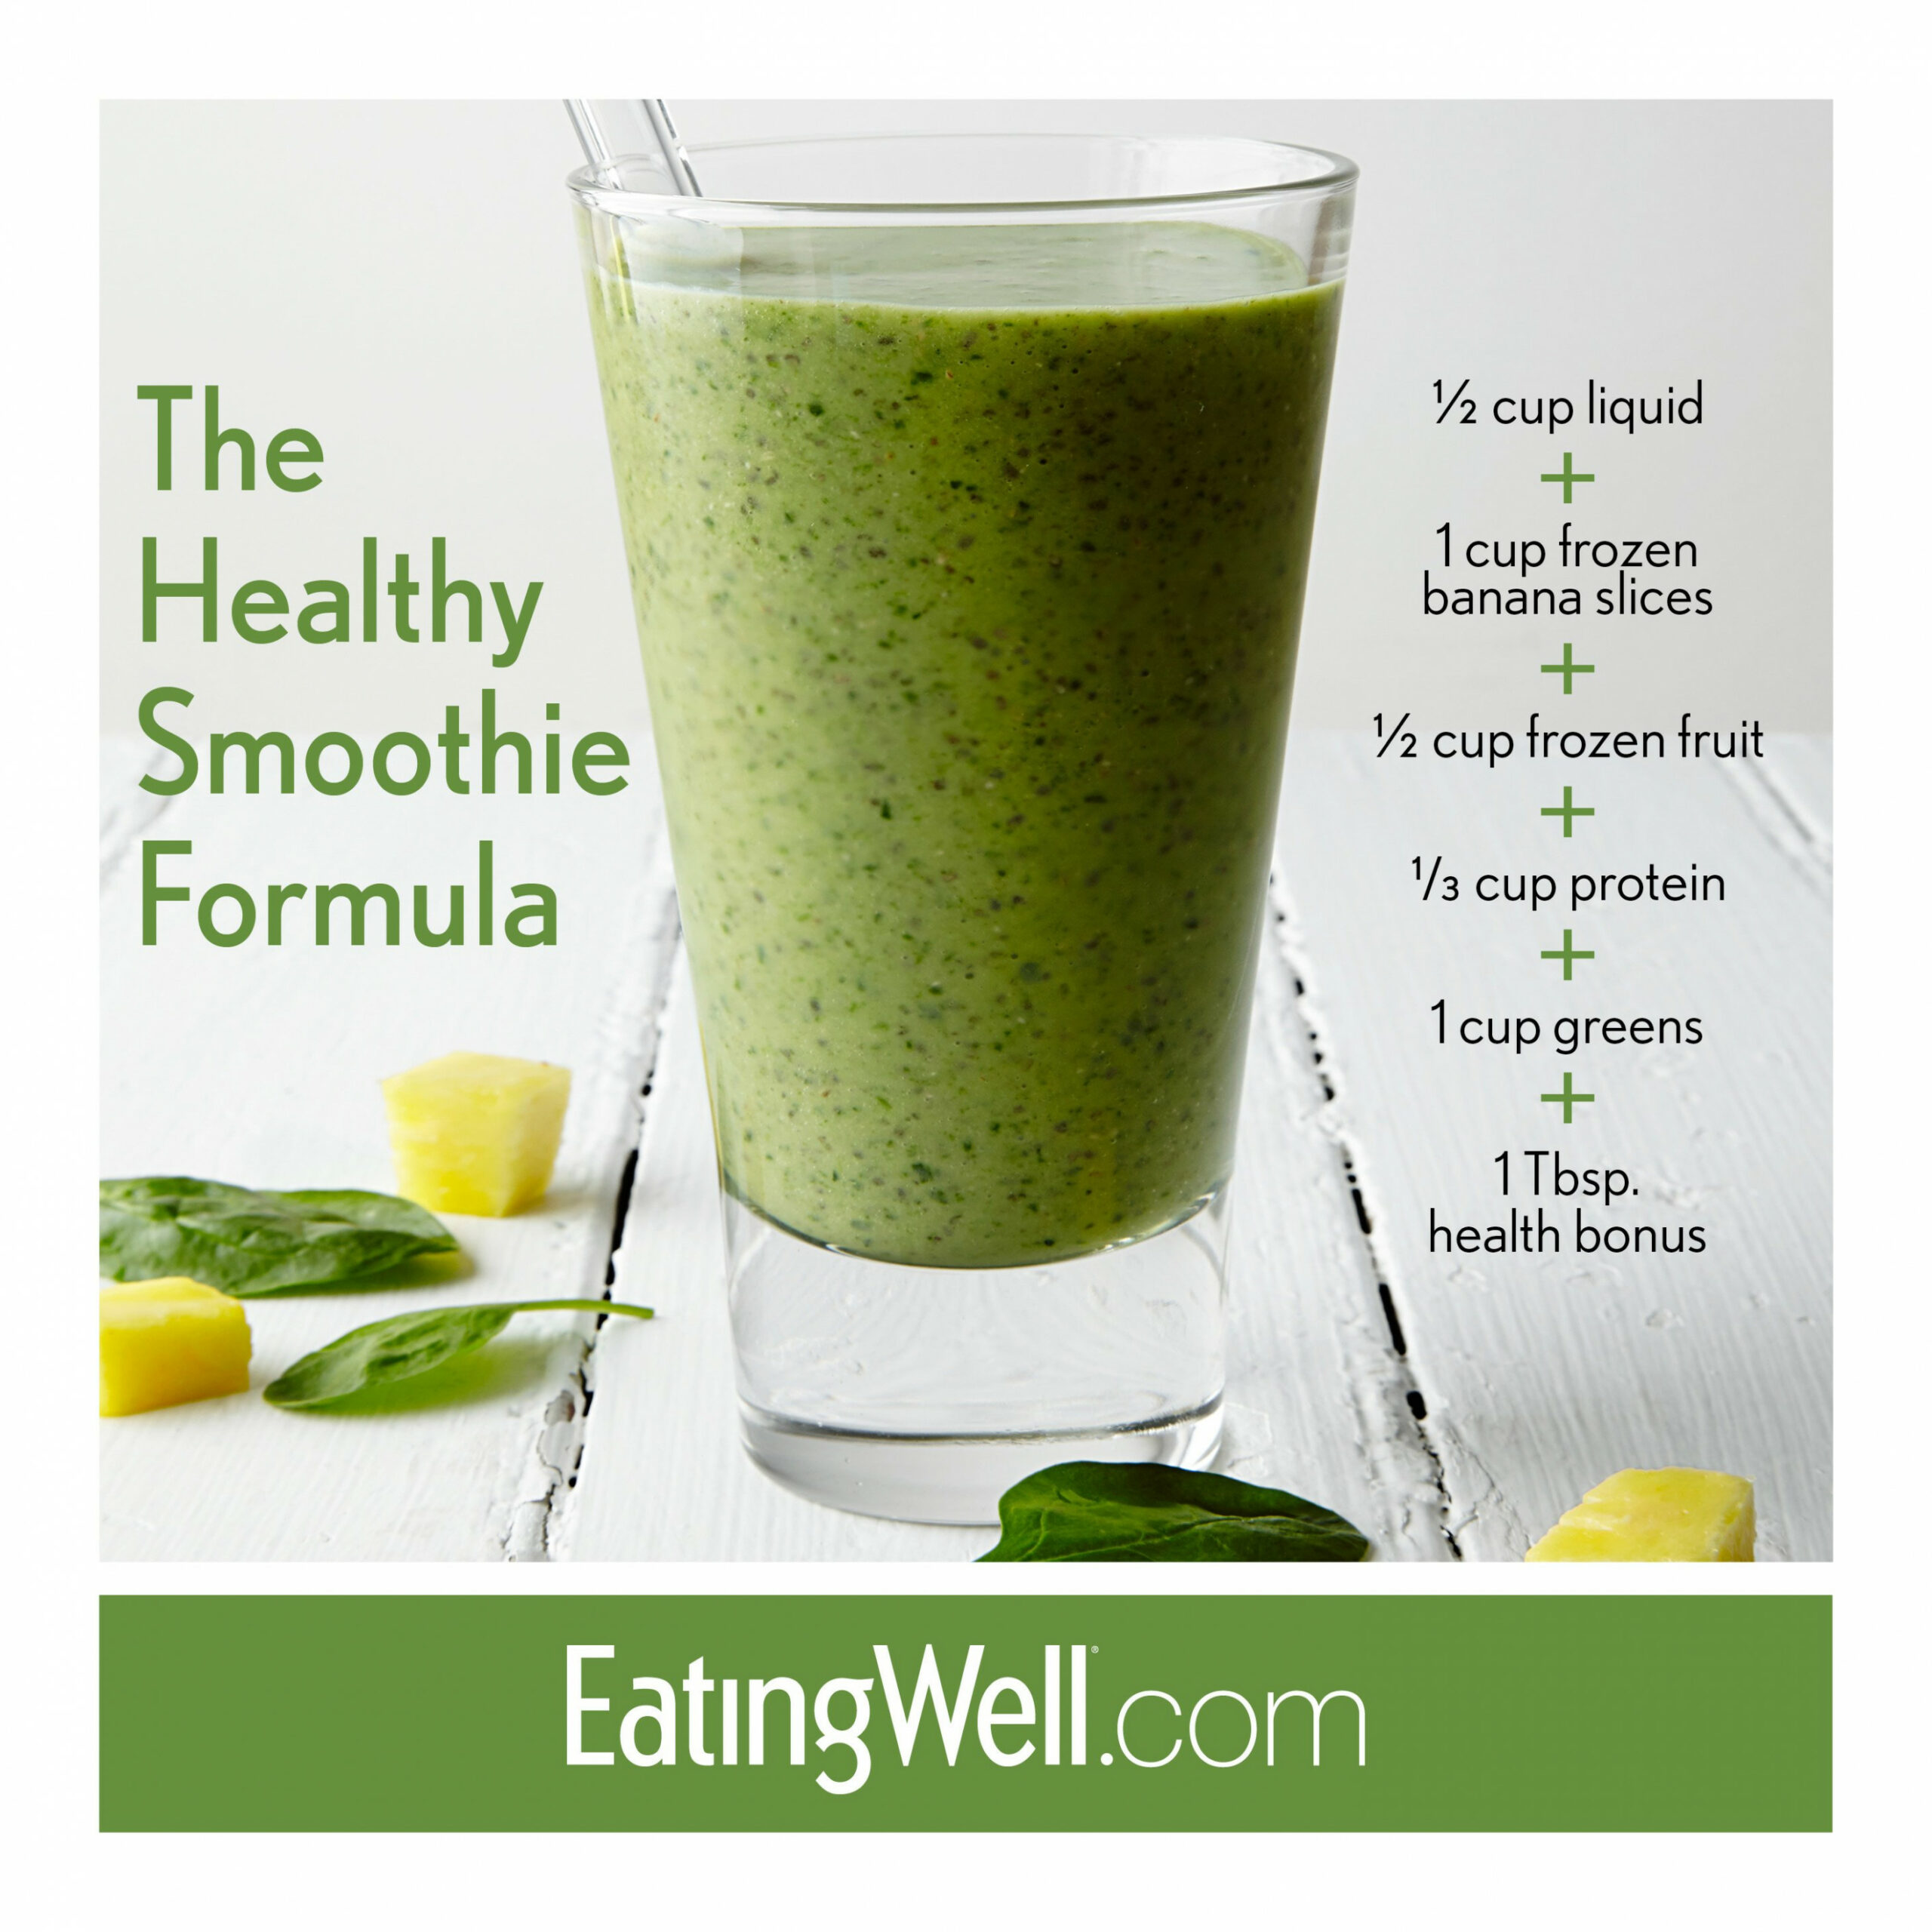 The Ultimate Green Smoothie Recipe | EatingWell - recipes of healthy smoothies